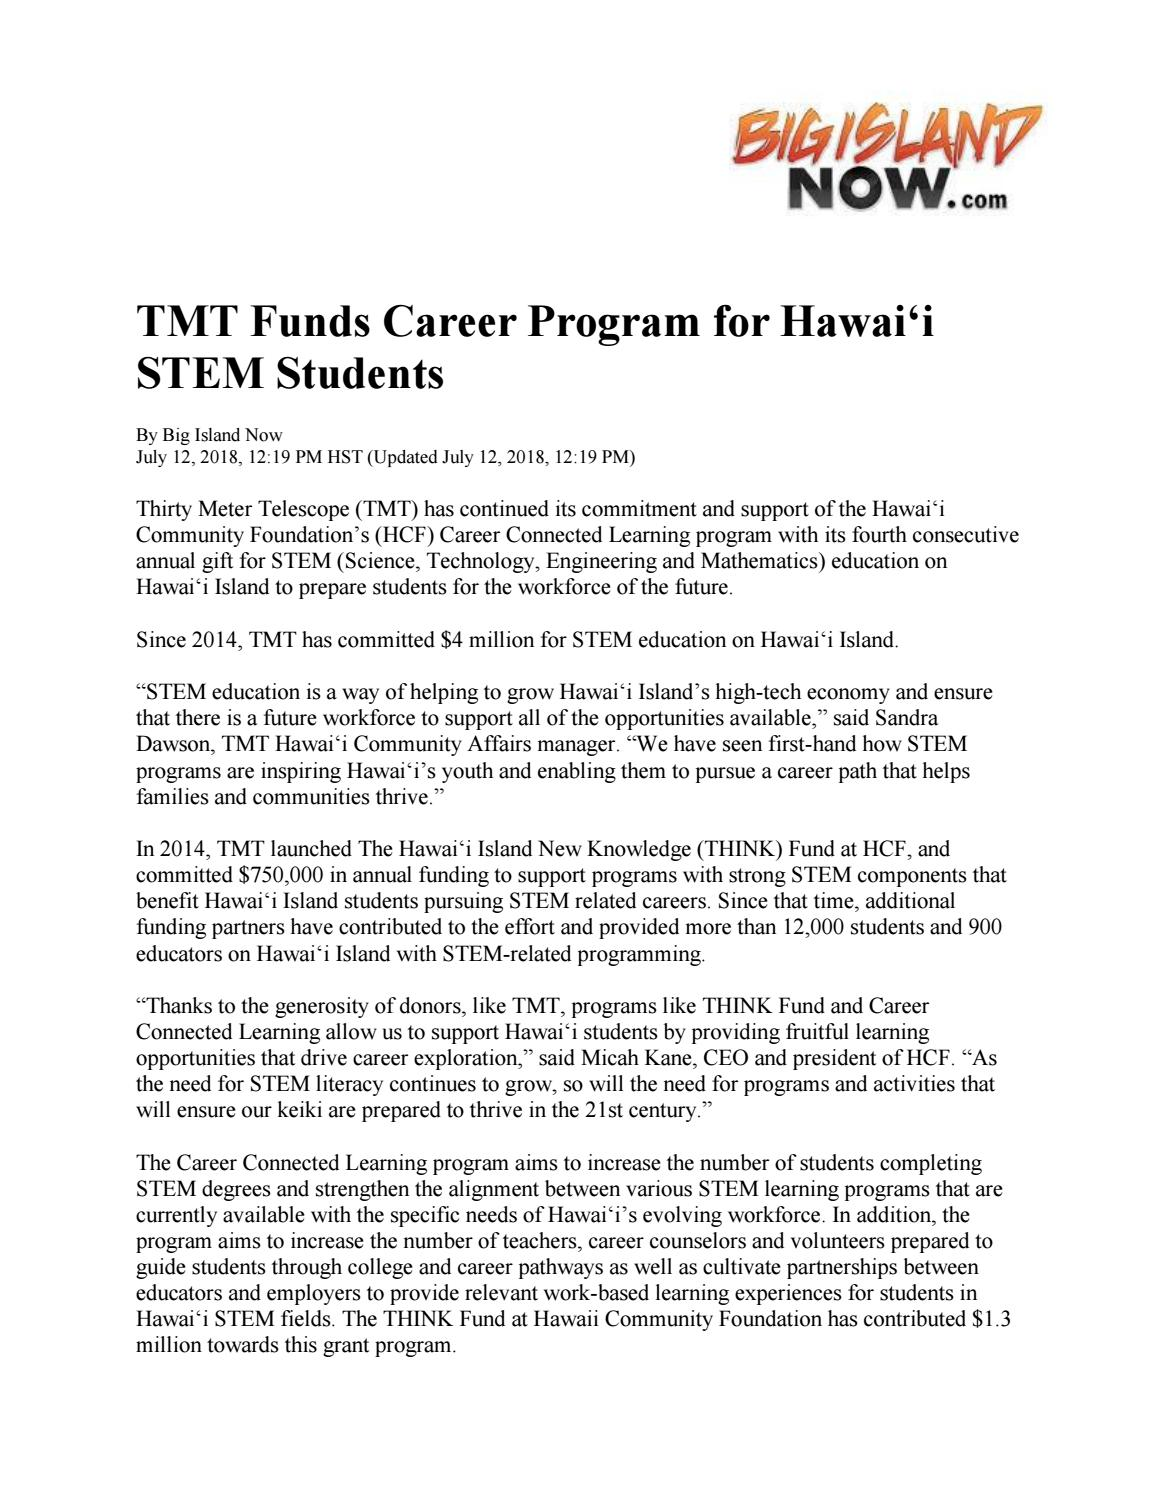 TMT funds career program for hawaii stem students by Hawaii